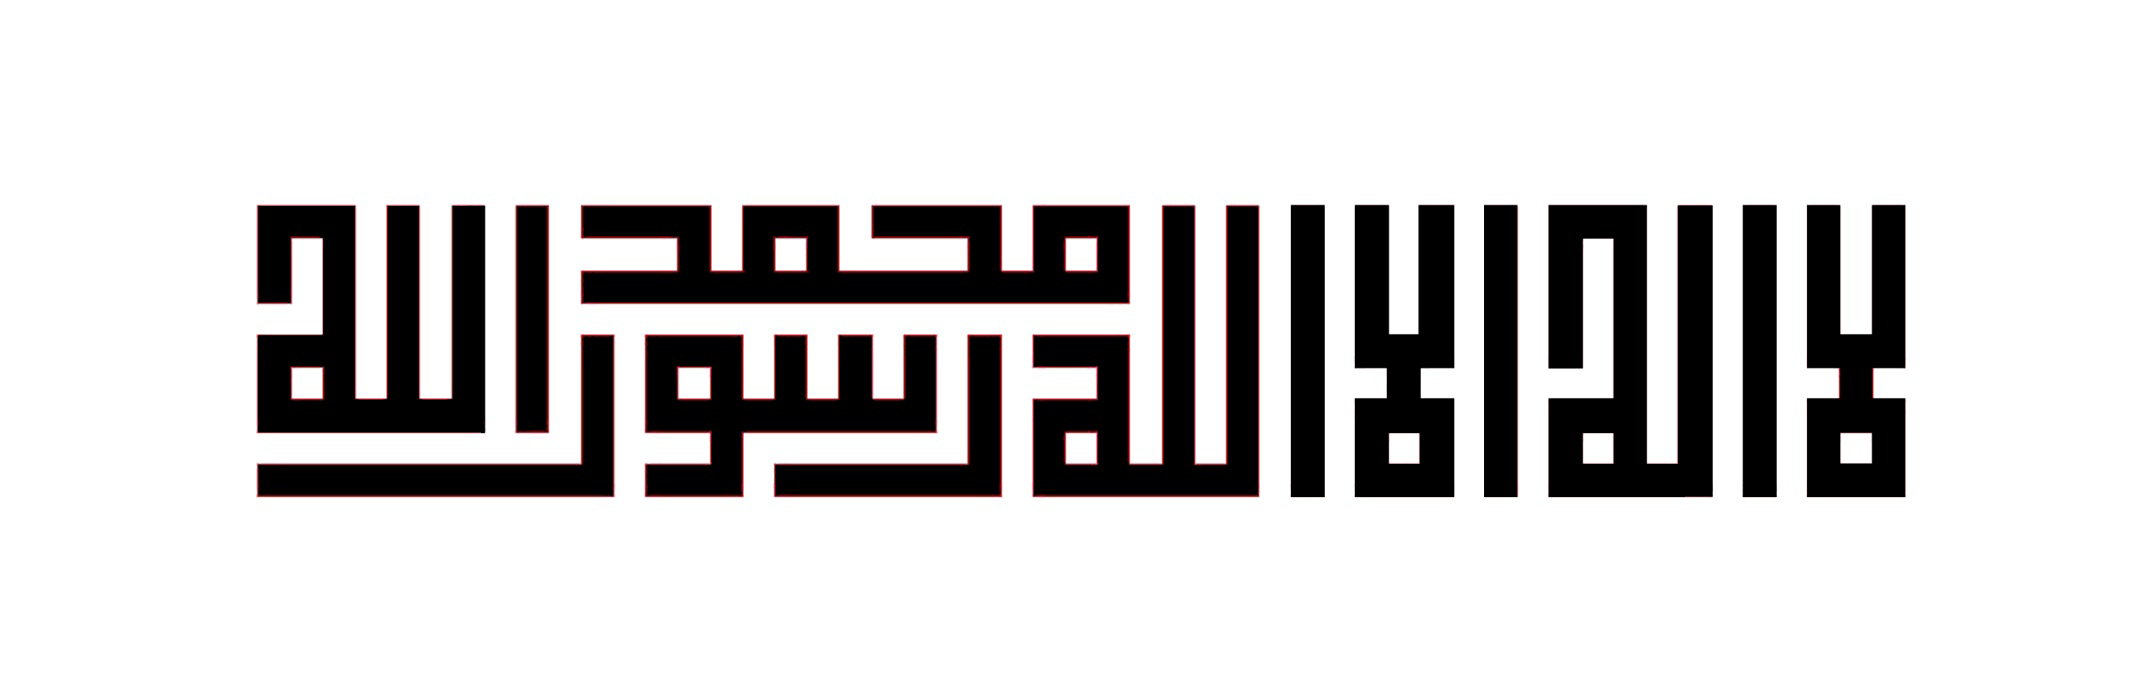 kufi calligraphy font free download